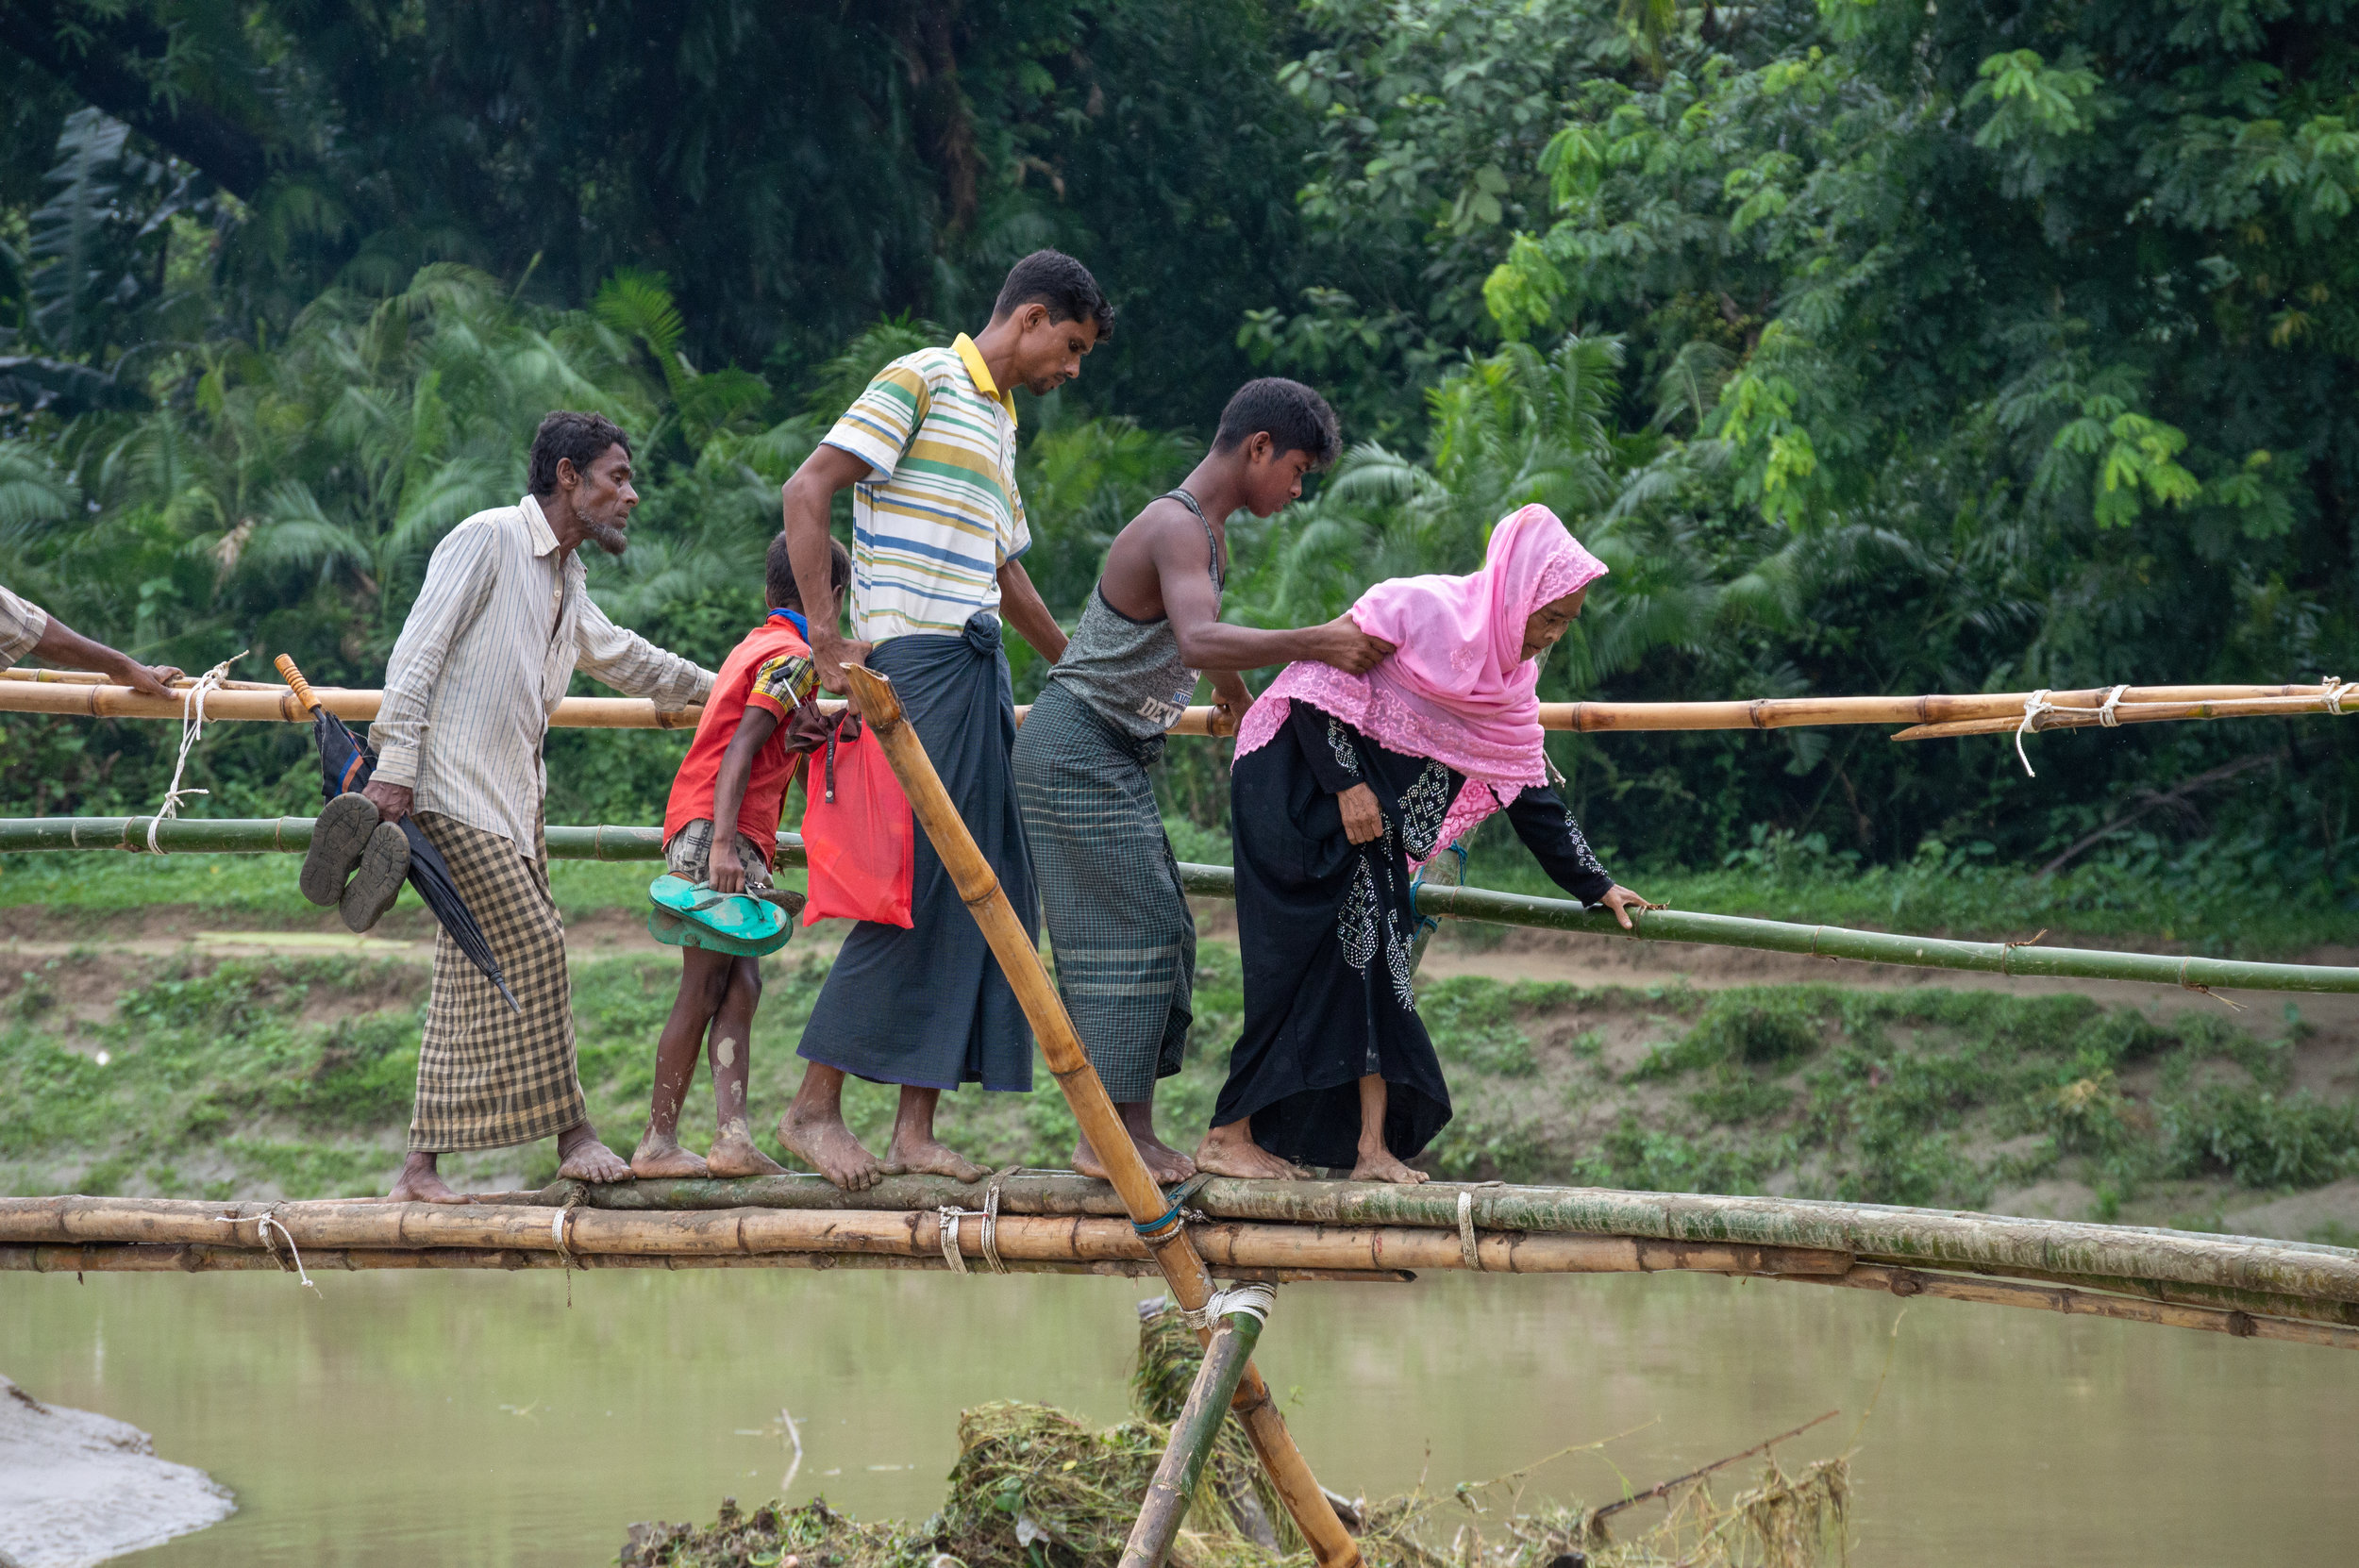 A group of Rohingya villagers living in  No Man's Land —a precariously situated area just on the Myanmar-Bangladesh border—make their way across the river on a hastily constructed temporary bridge, erected shortly after the first rains of the monsoon season destroyed the more regular bridge.  Photo by Leif B. Kennedy, June 11, 2018.